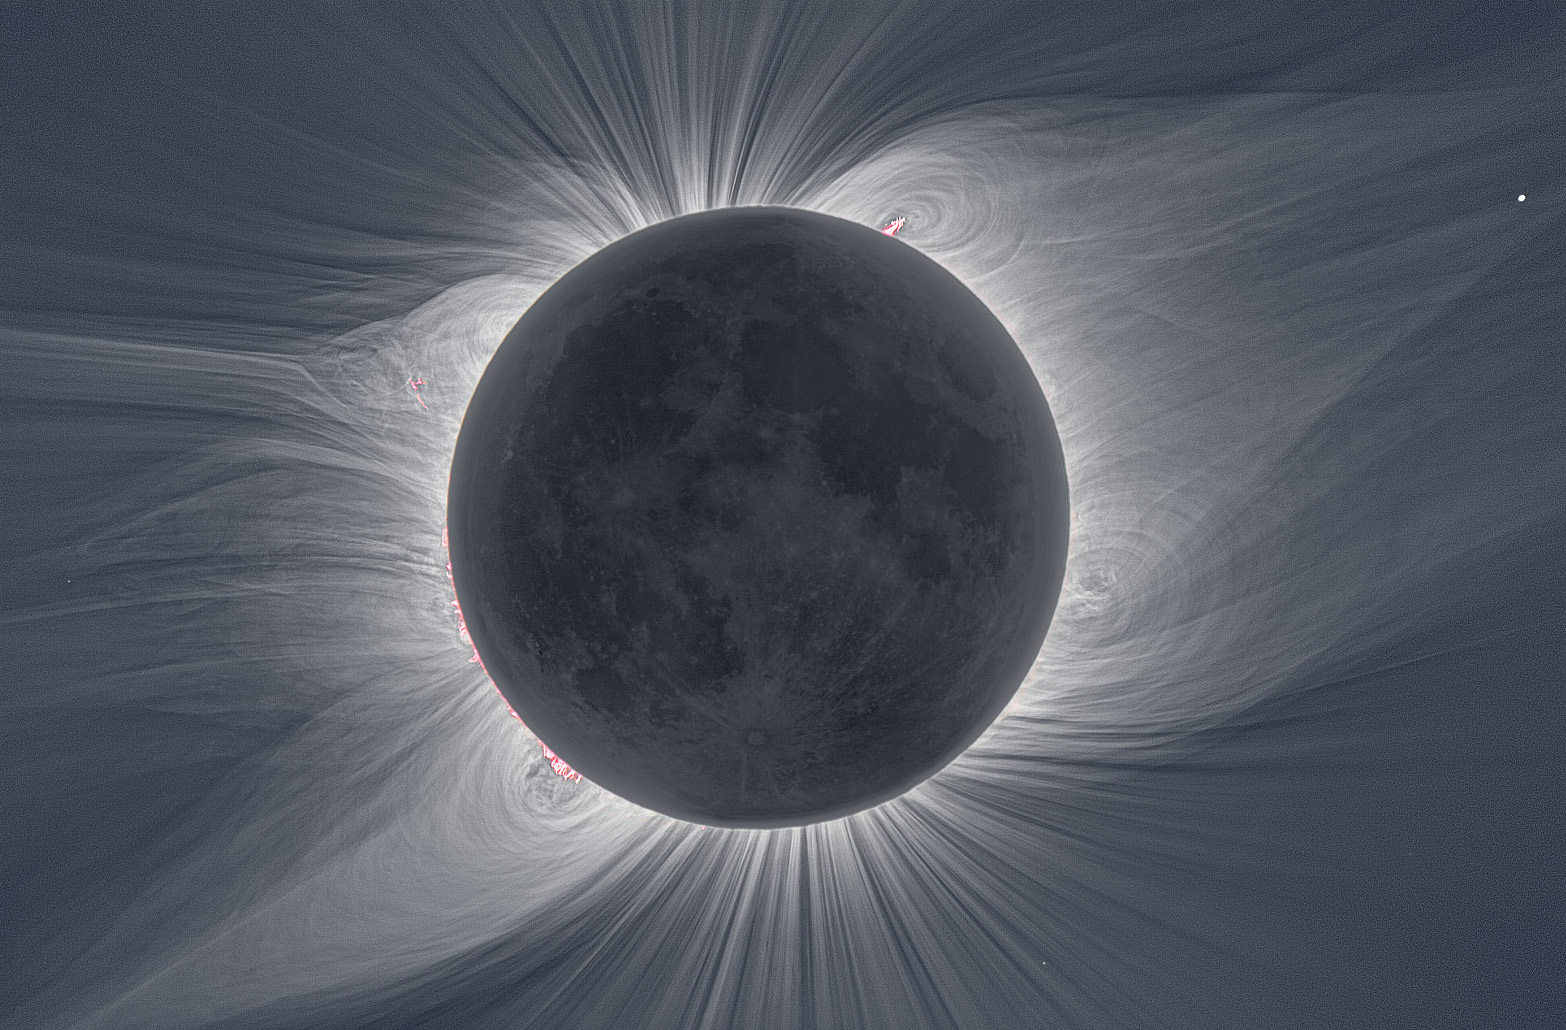 NASA will chase eclipse with two old warplanes to extend viewing time by five minutes